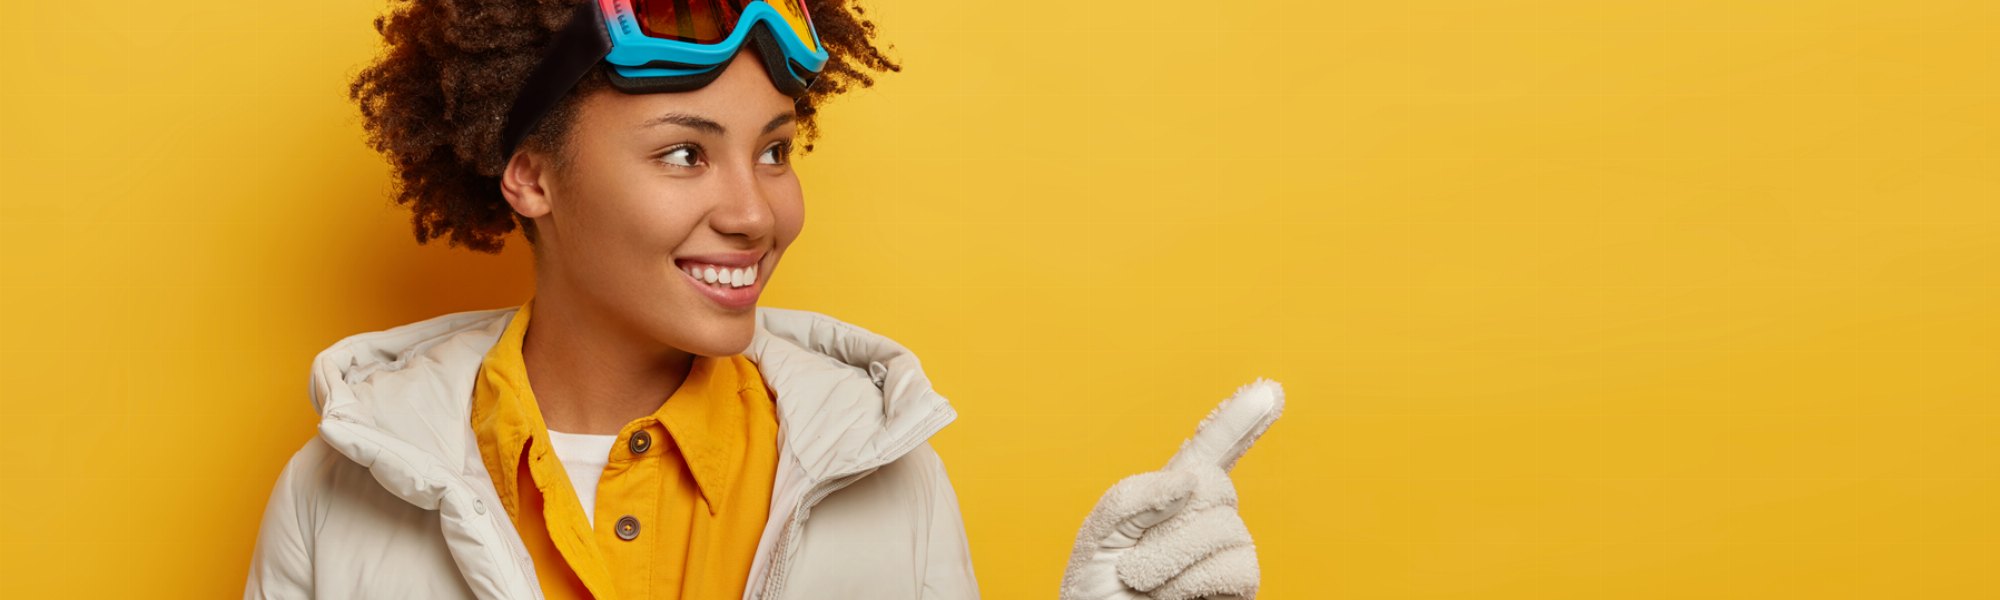 SPECIALIST SKIING CLOTHING & EQUIPMENT